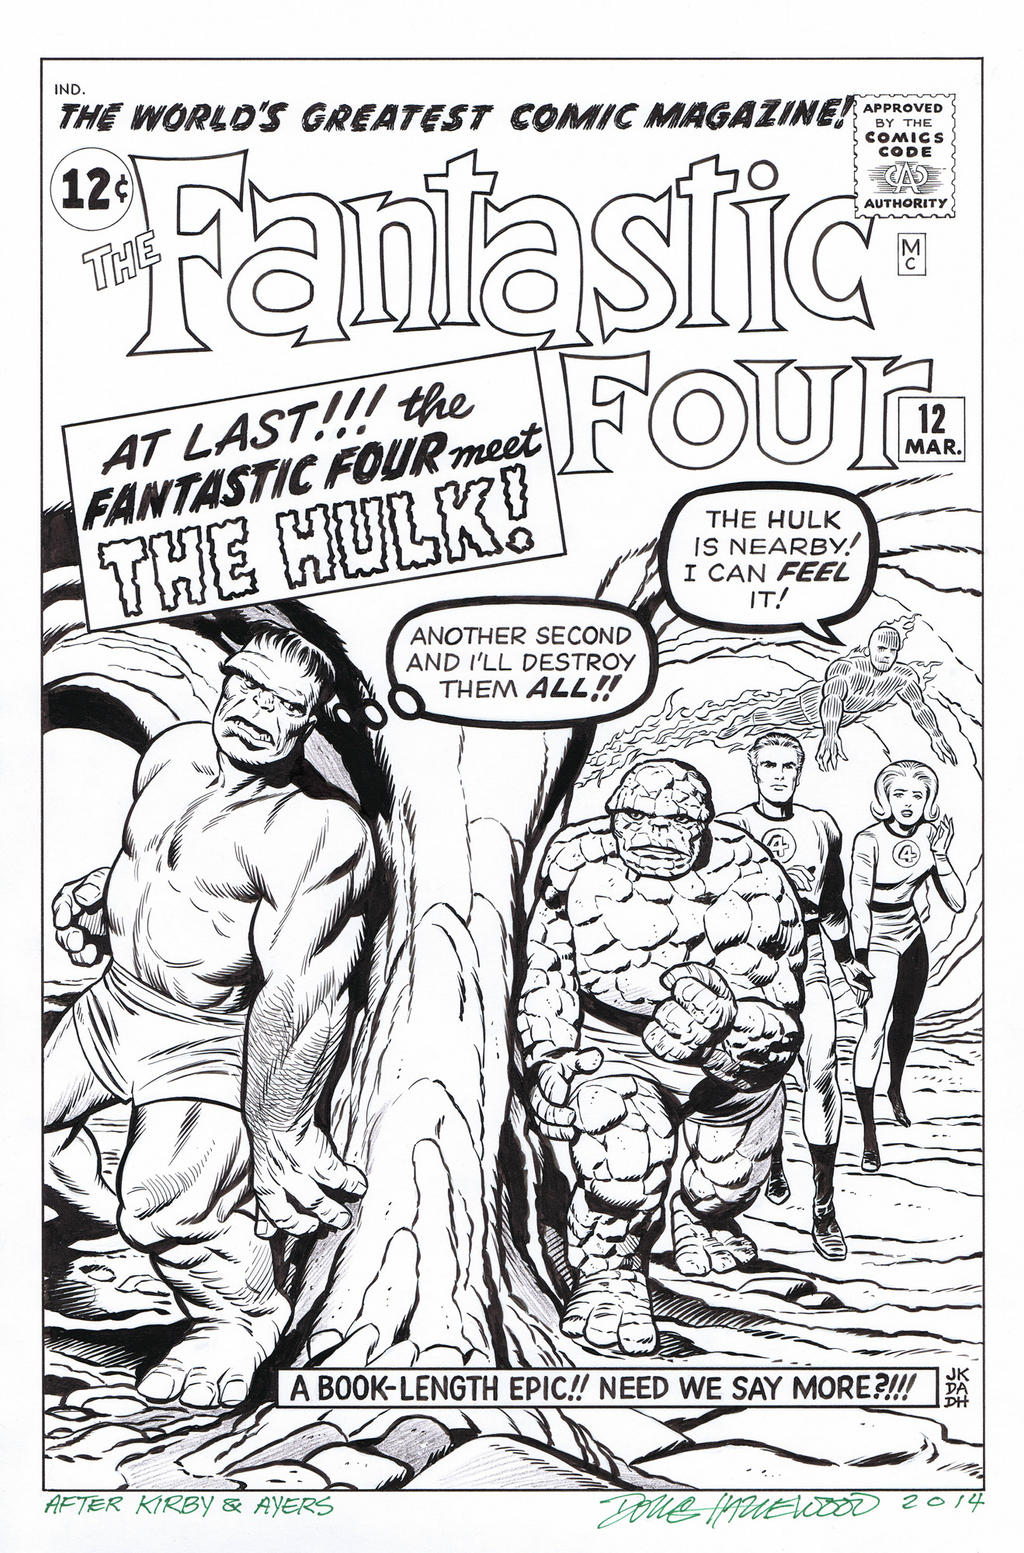 FANTASTIC FOUR 12 Cover Recreation HULK Hazlewood by DRHazlewood